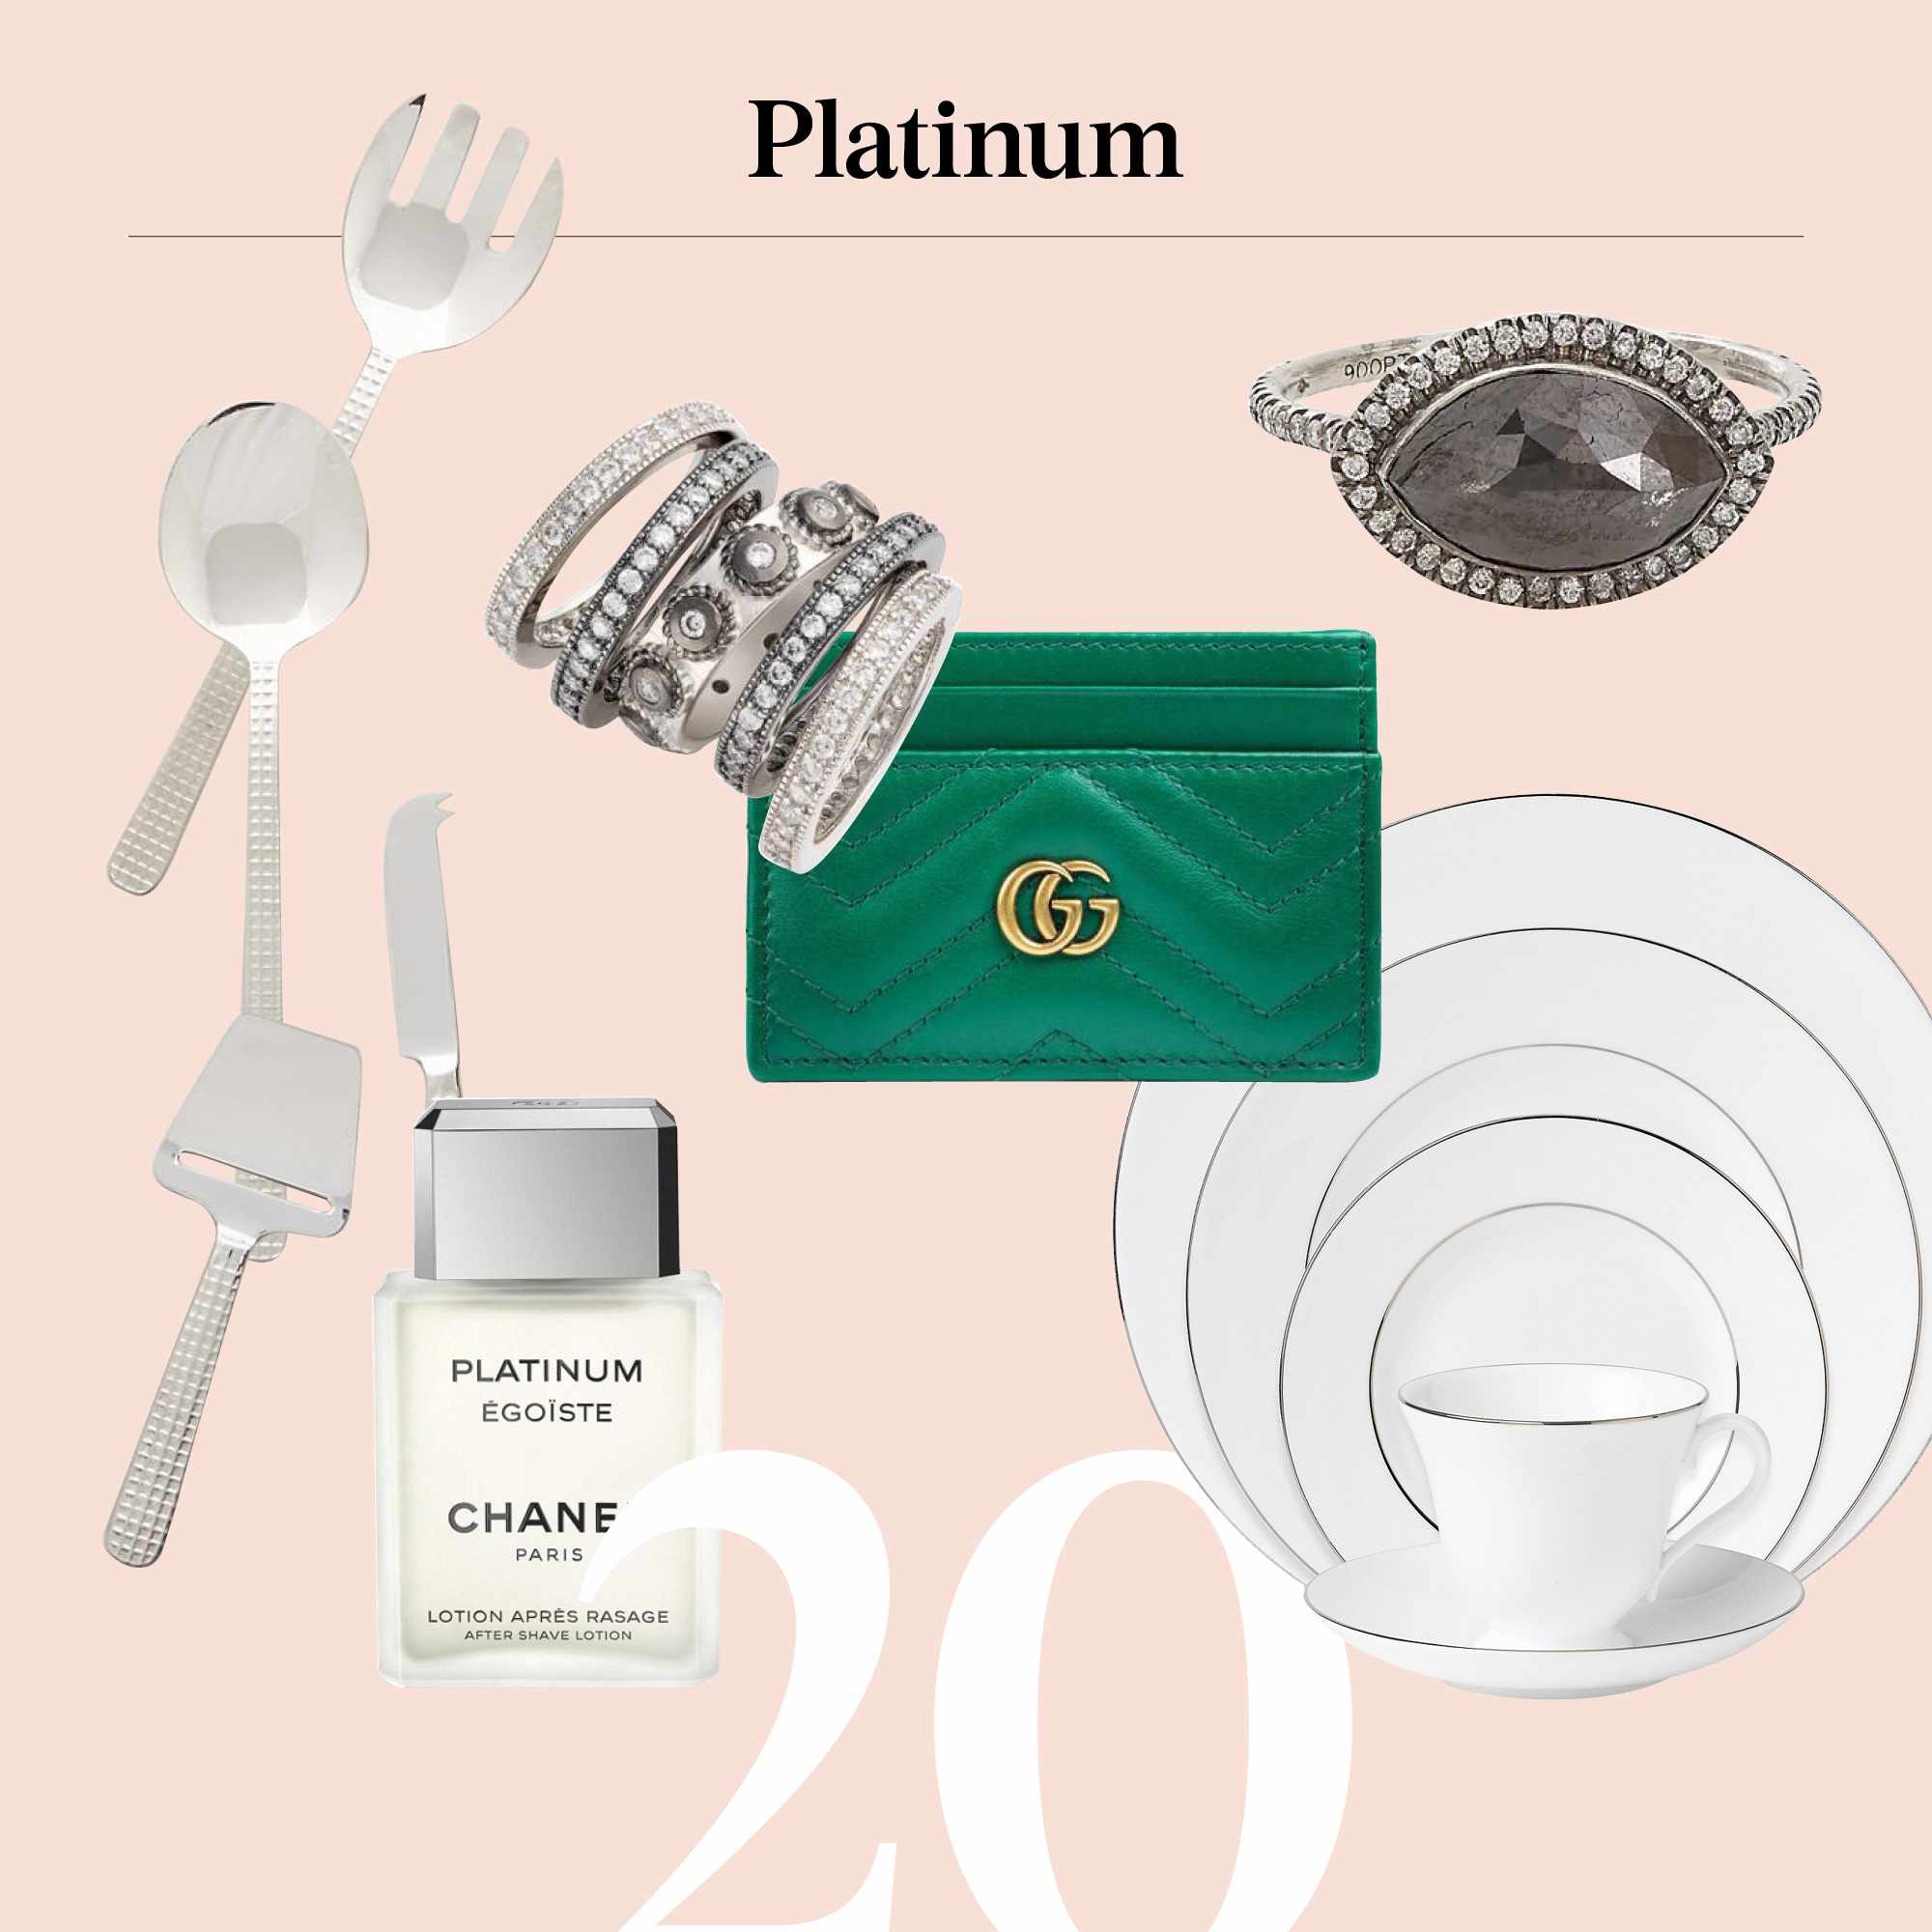 20th Wedding Anniversary Gift Ideas For Him: 54 Wedding Anniversary Gifts By Year For Him, Her, And Them